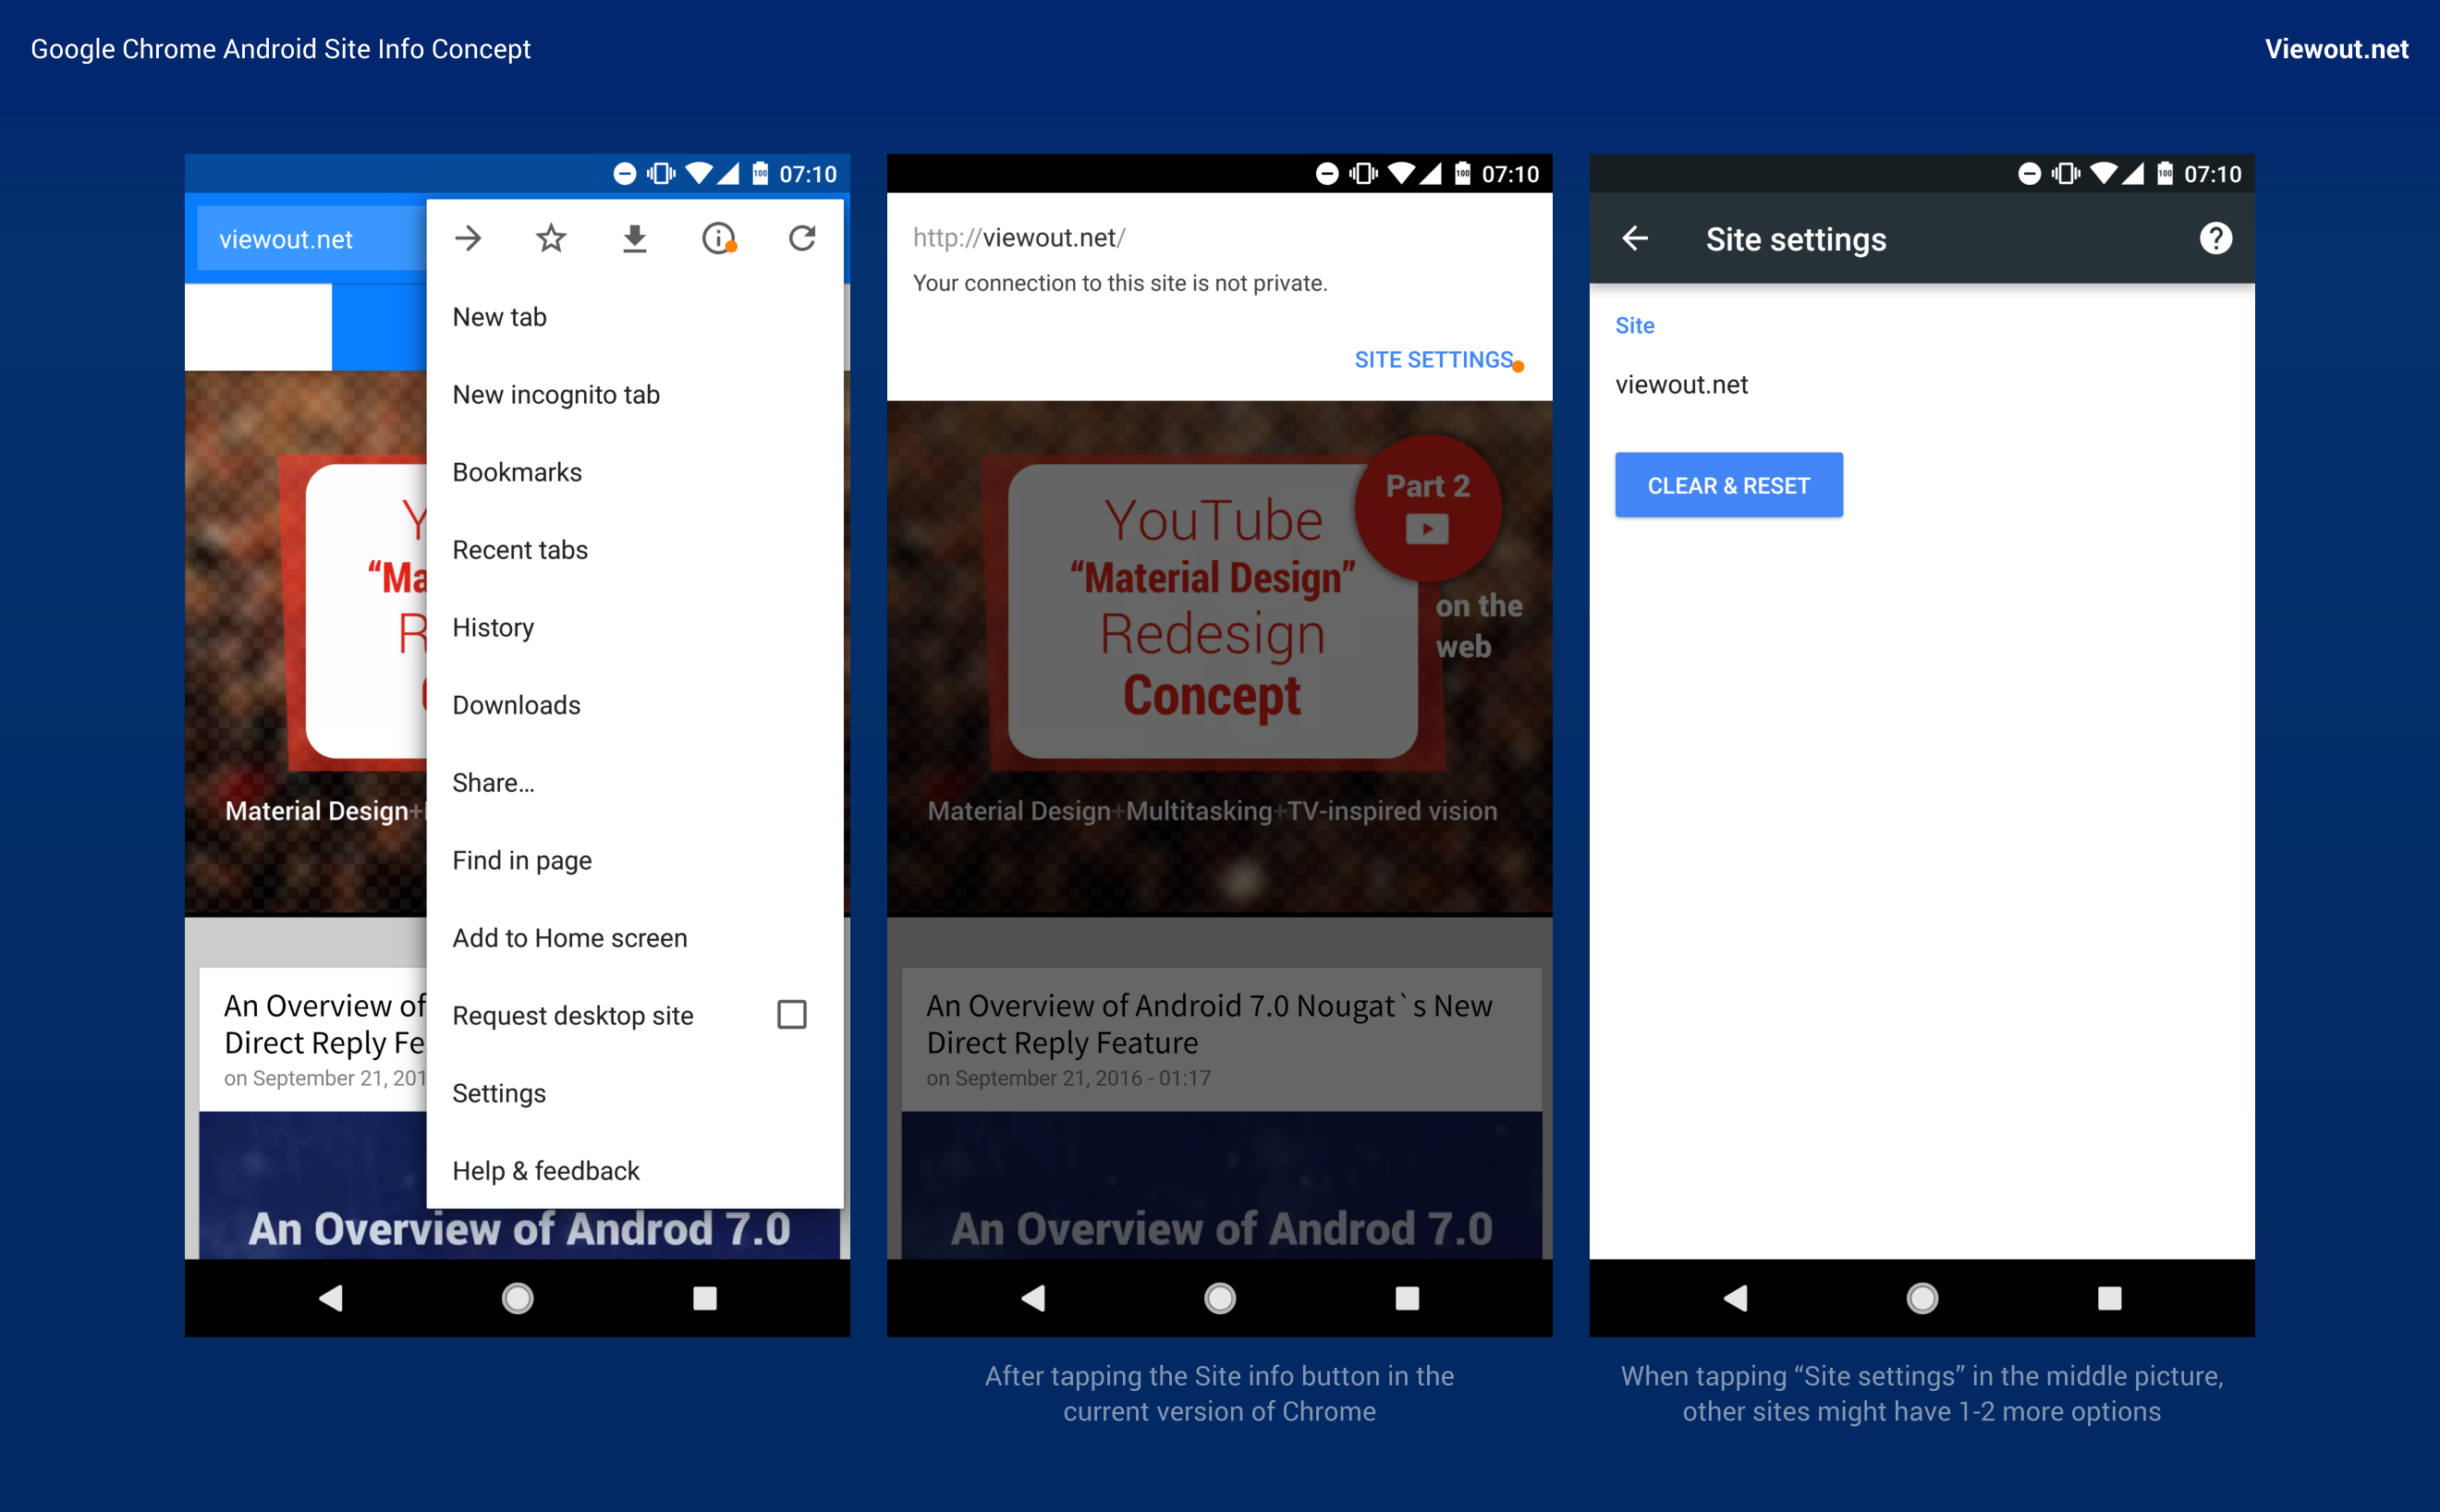 Google Chrome Android Site Info Concept - Viewout